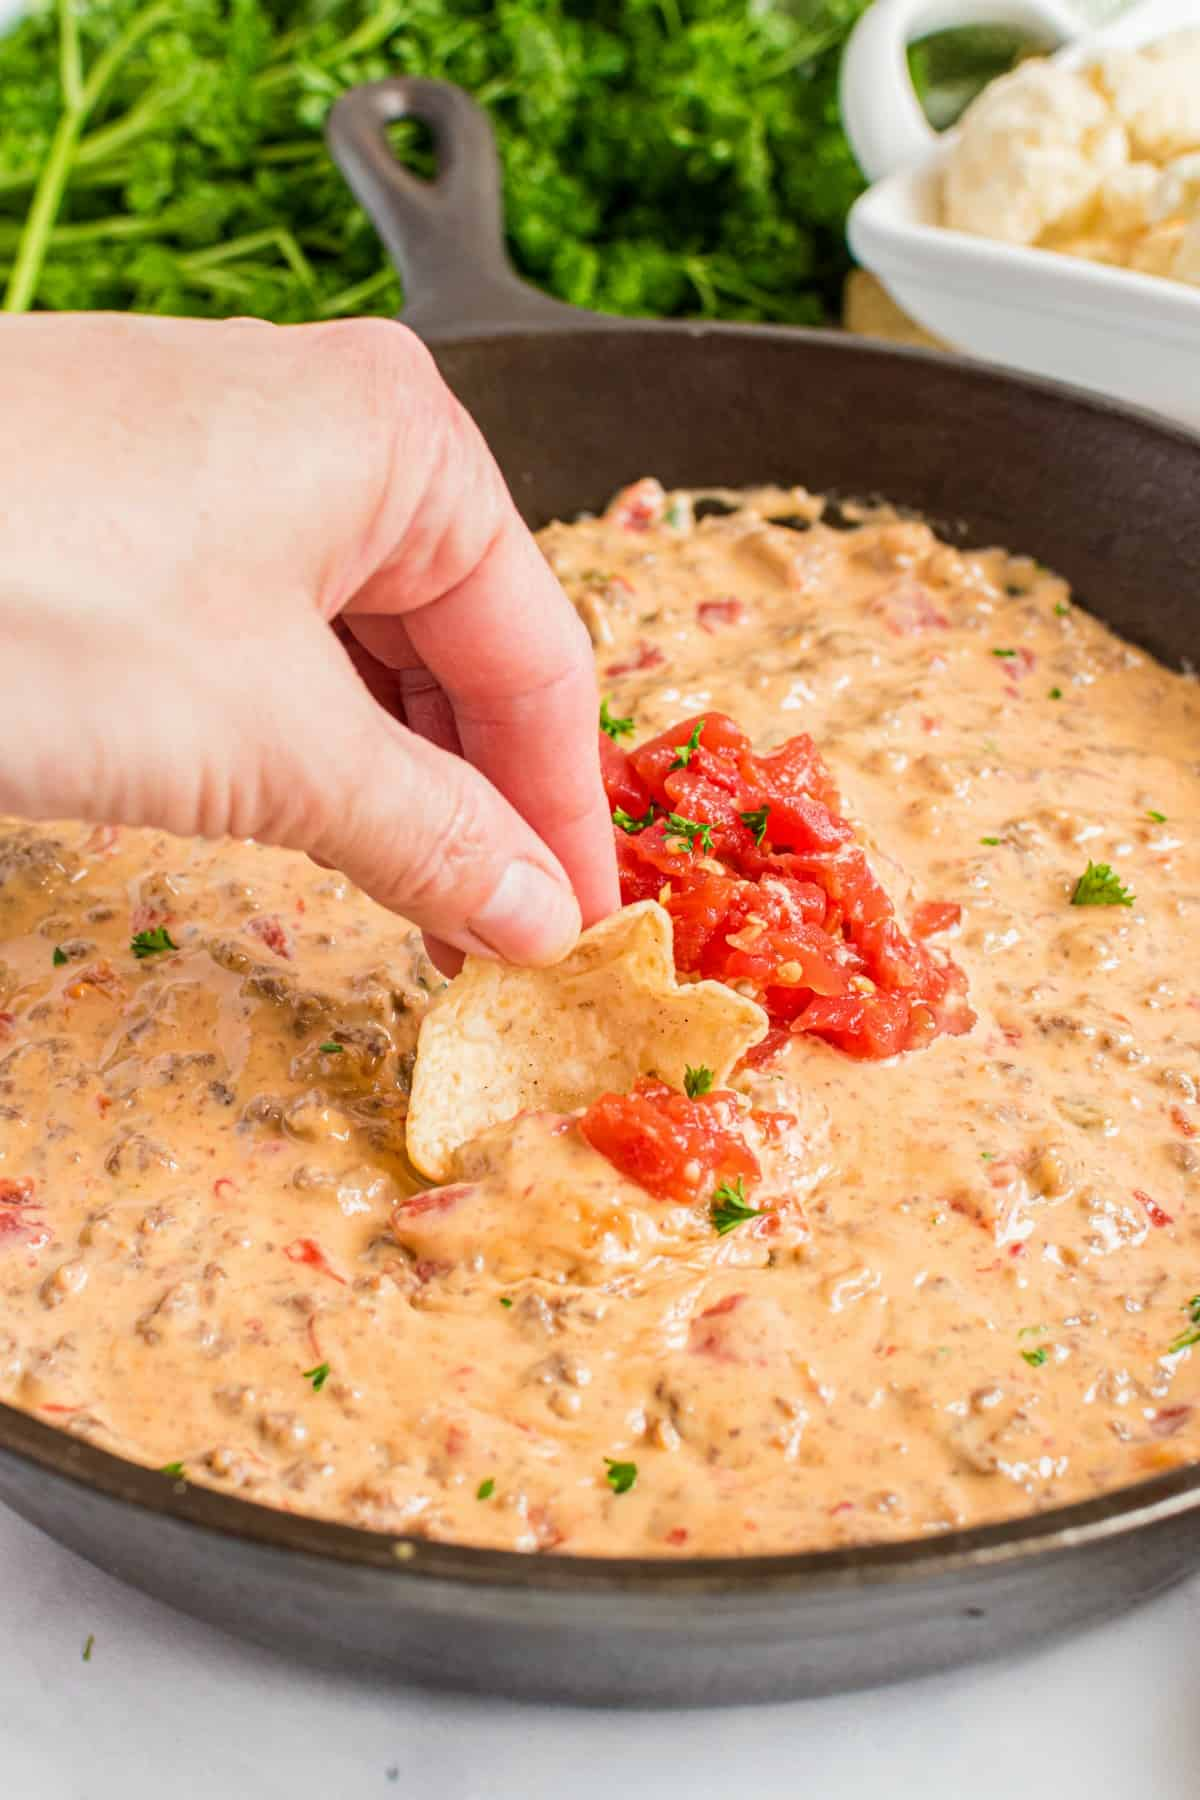 Cheesy rotel dip in a black cast iron skillet with a hand scooping dip on a tortilla chip.